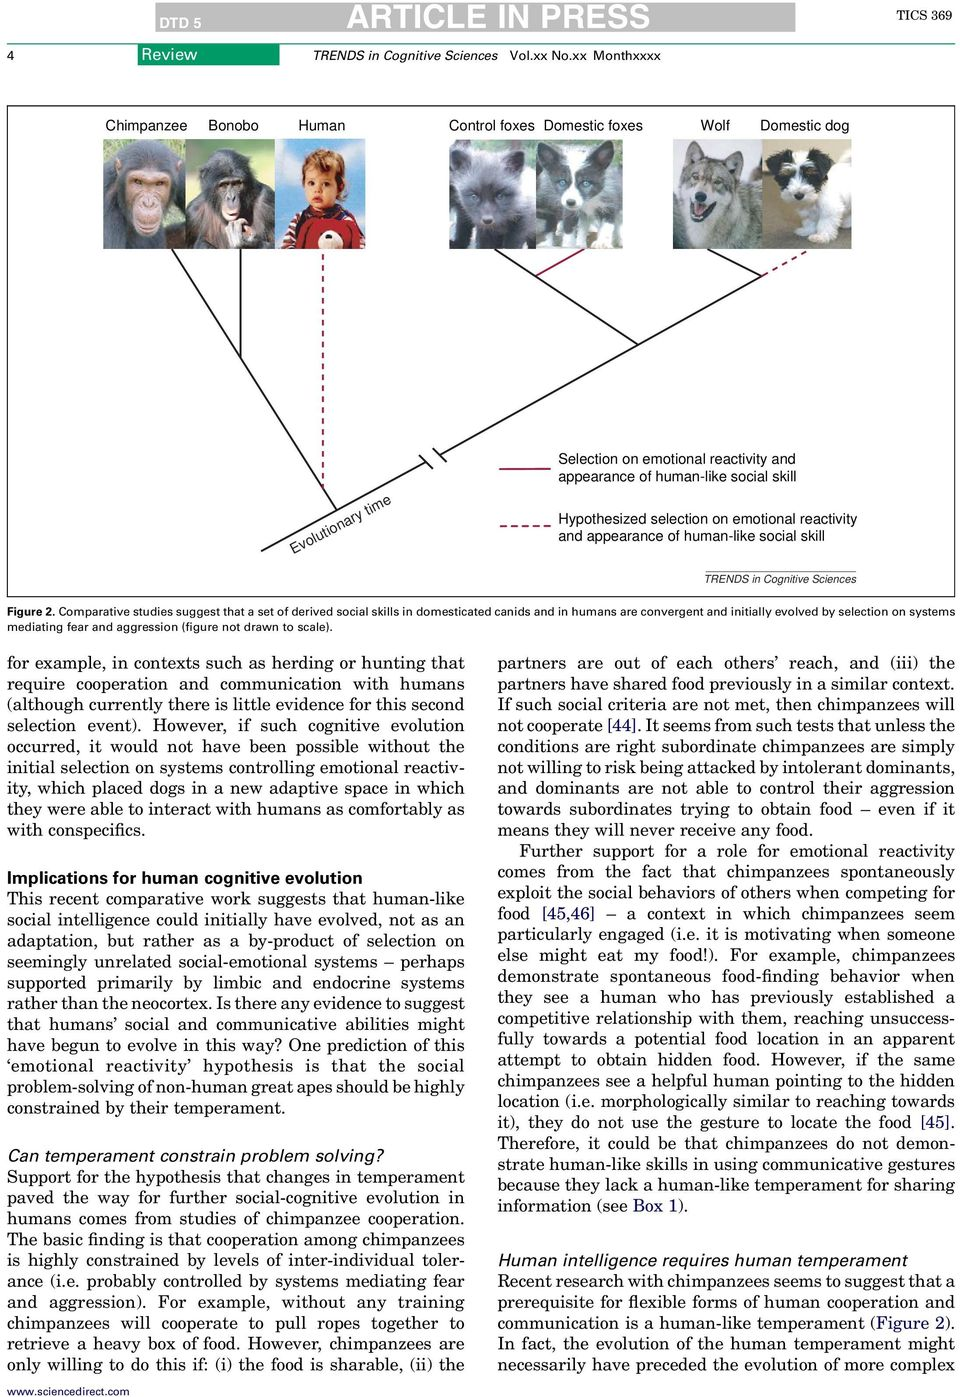 Comparative studies suggest that a set of derived social skills in domesticated canids and in humans are convergent and initially evolved by selection on systems mediating fear and aggression (figure